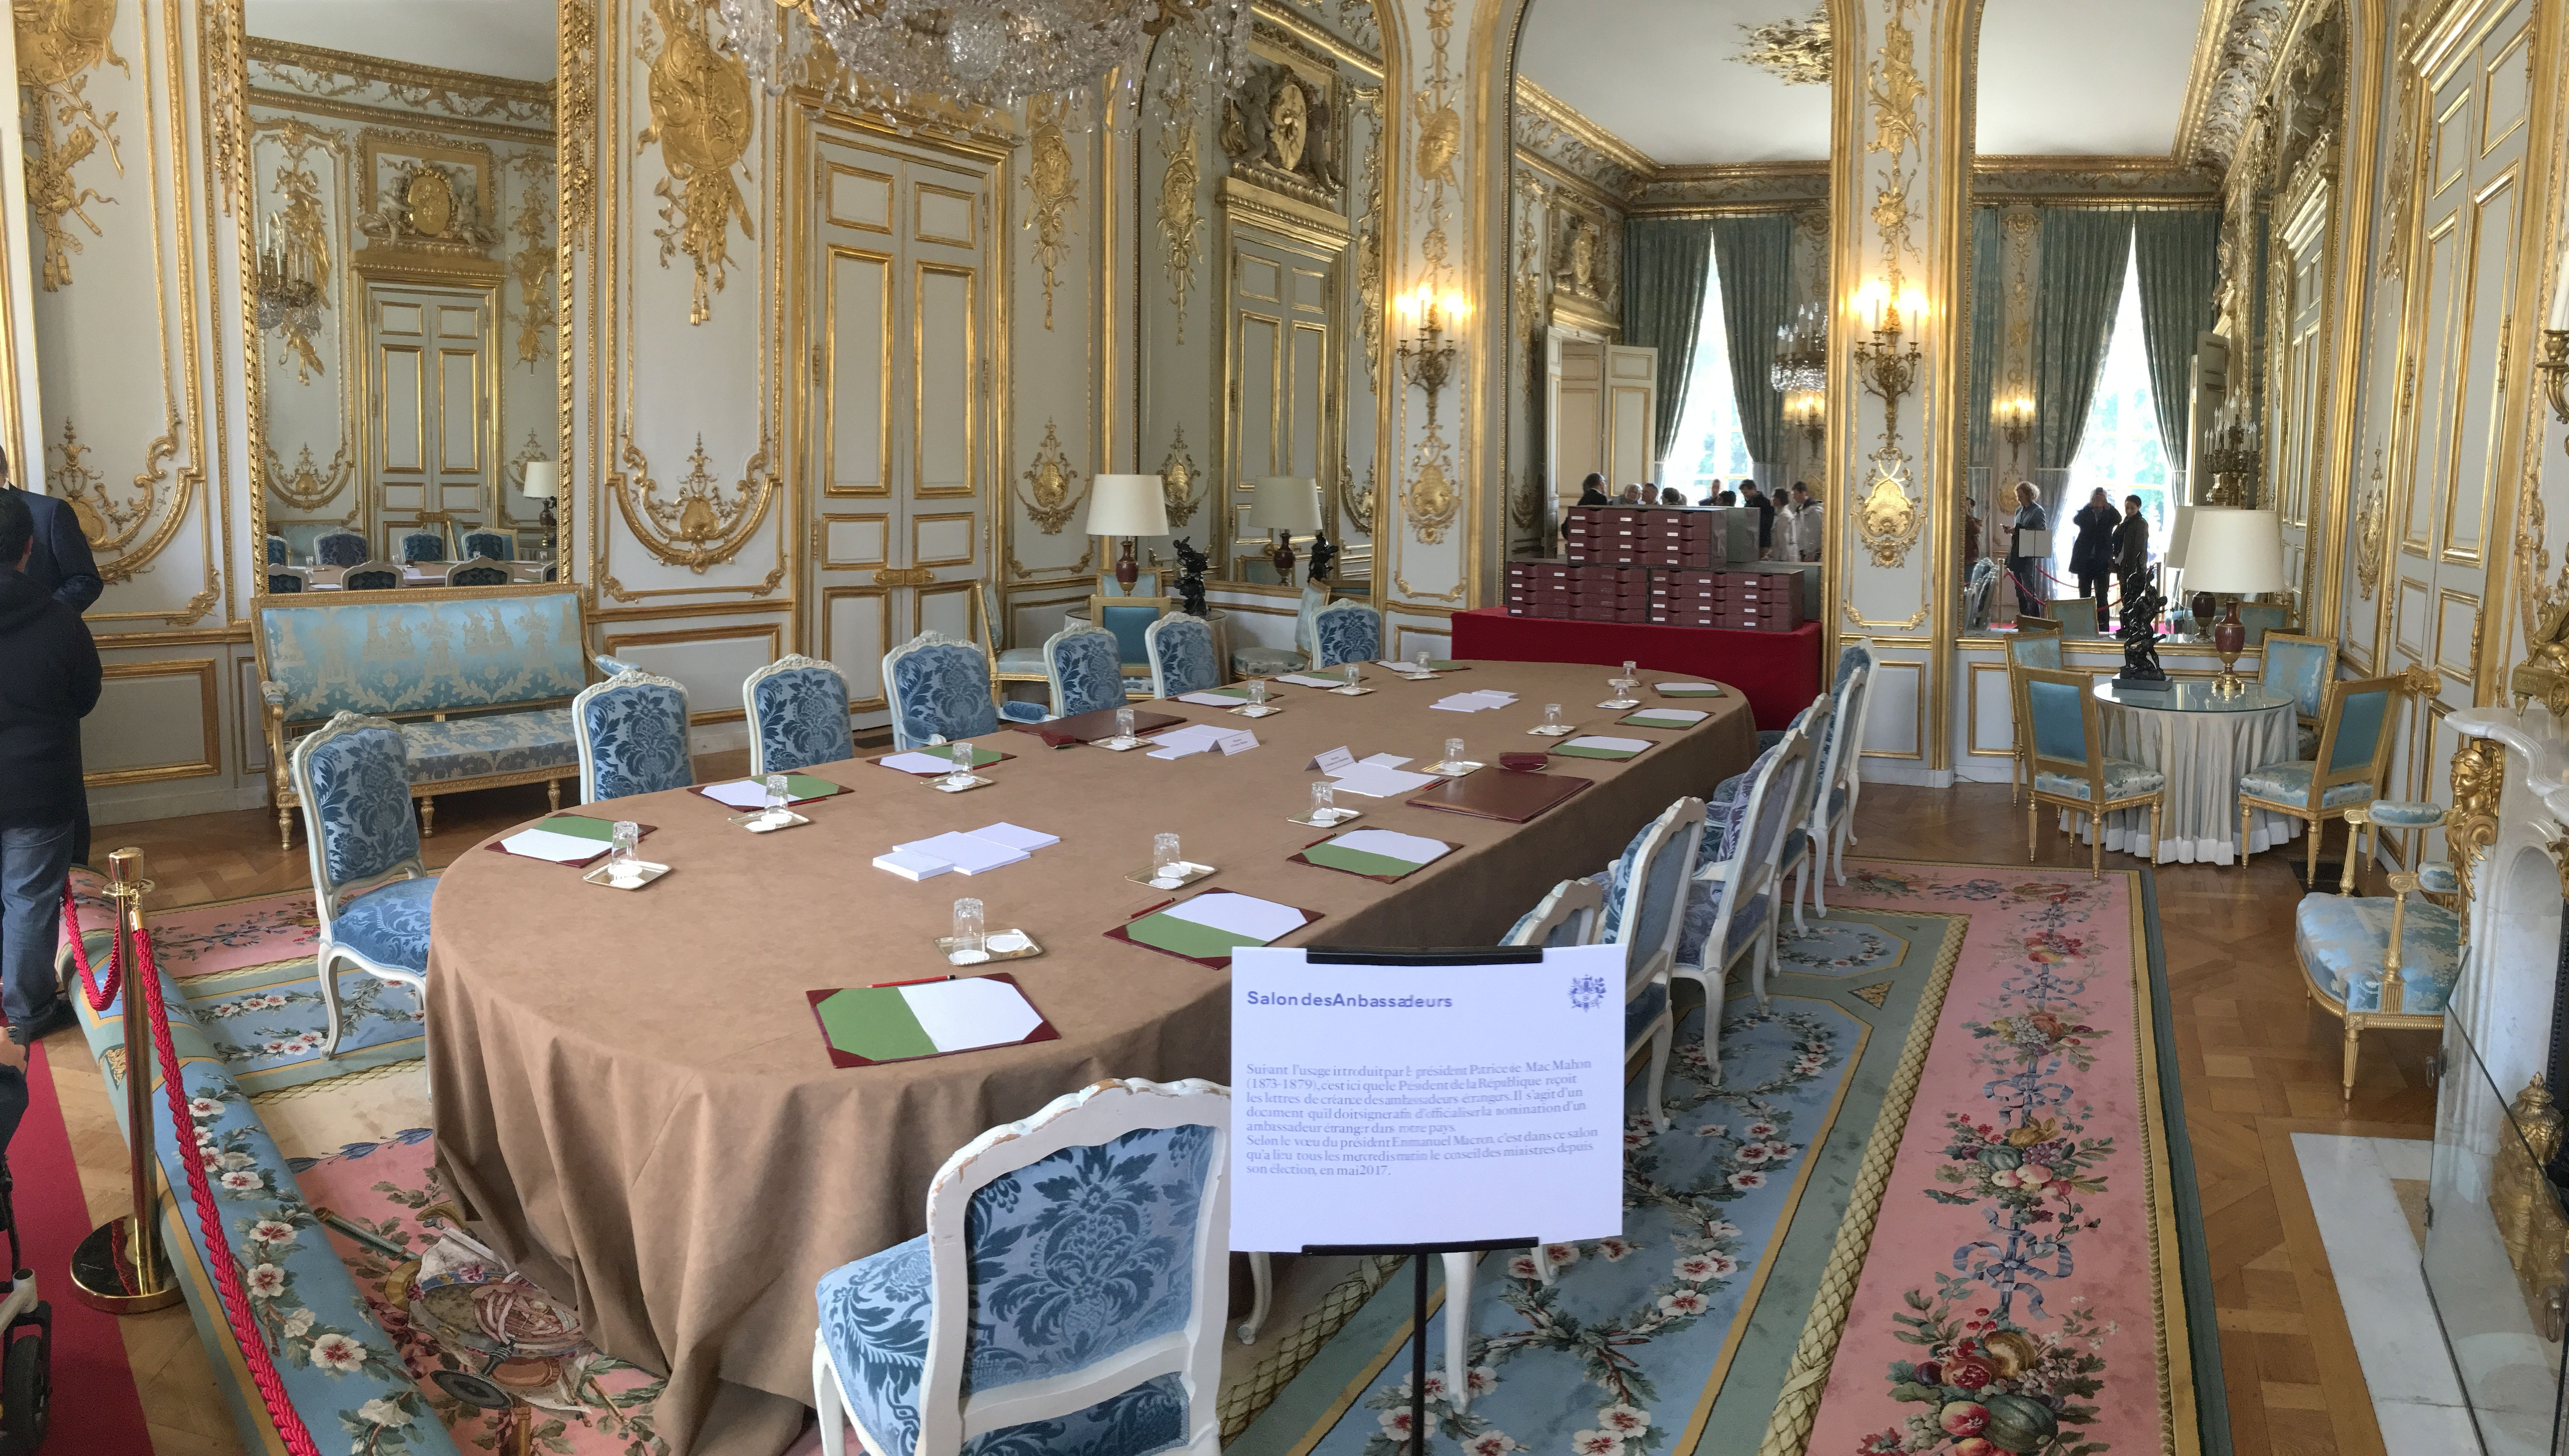 salon des ambassadeurs conseil des ministres du mercredi sous macron journ es du patrimoine. Black Bedroom Furniture Sets. Home Design Ideas